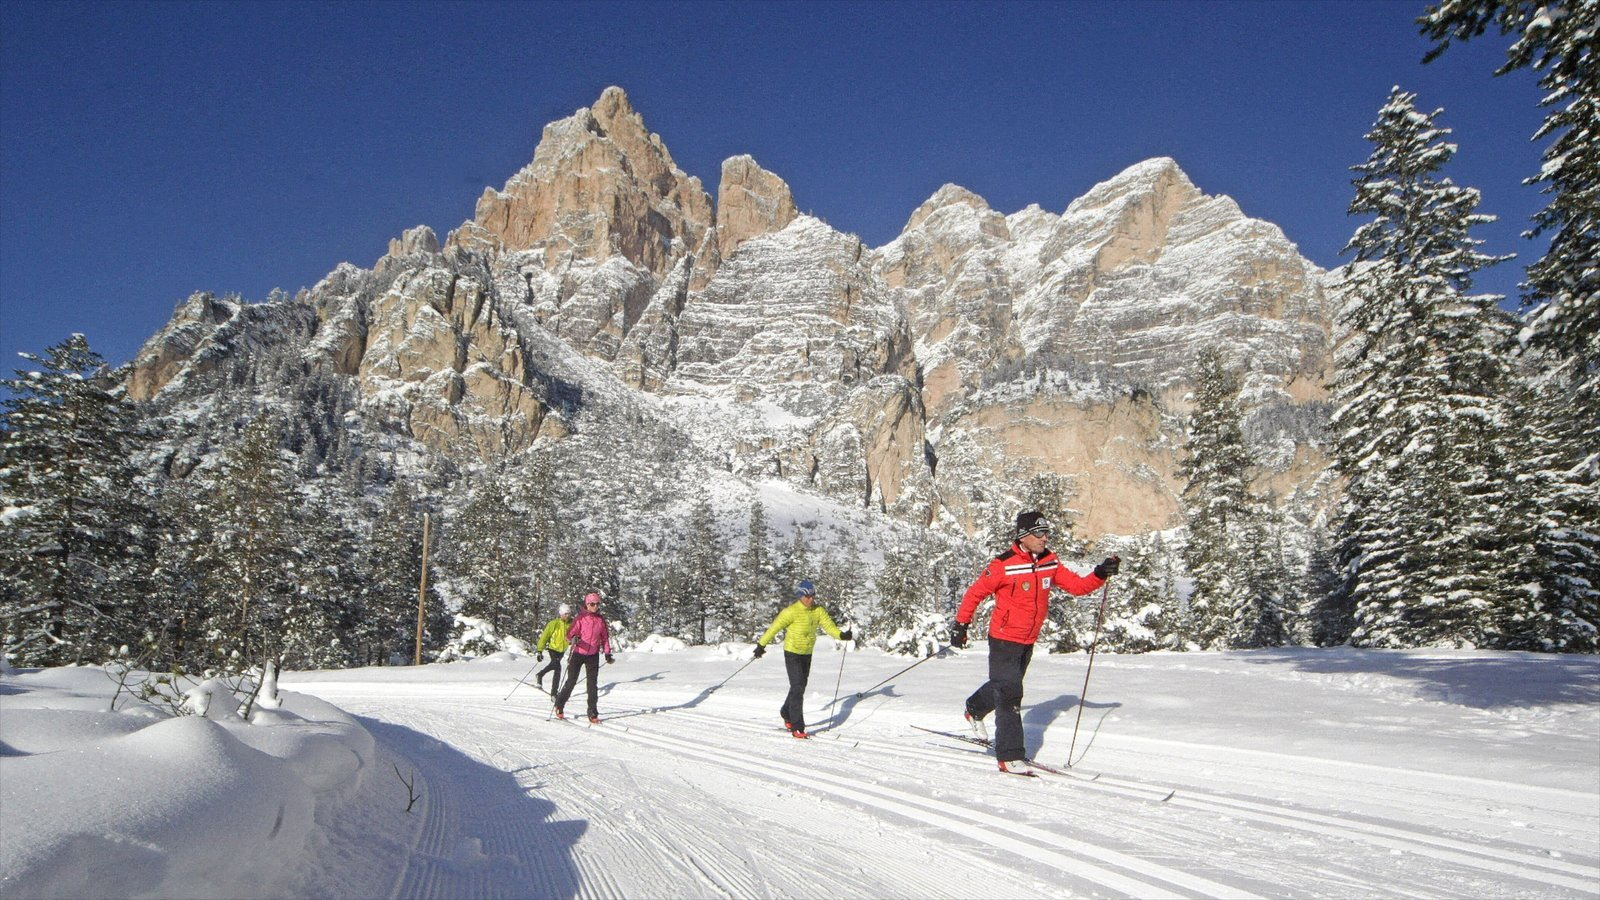 Alta Badia featuring mountains, snow and snow skiing